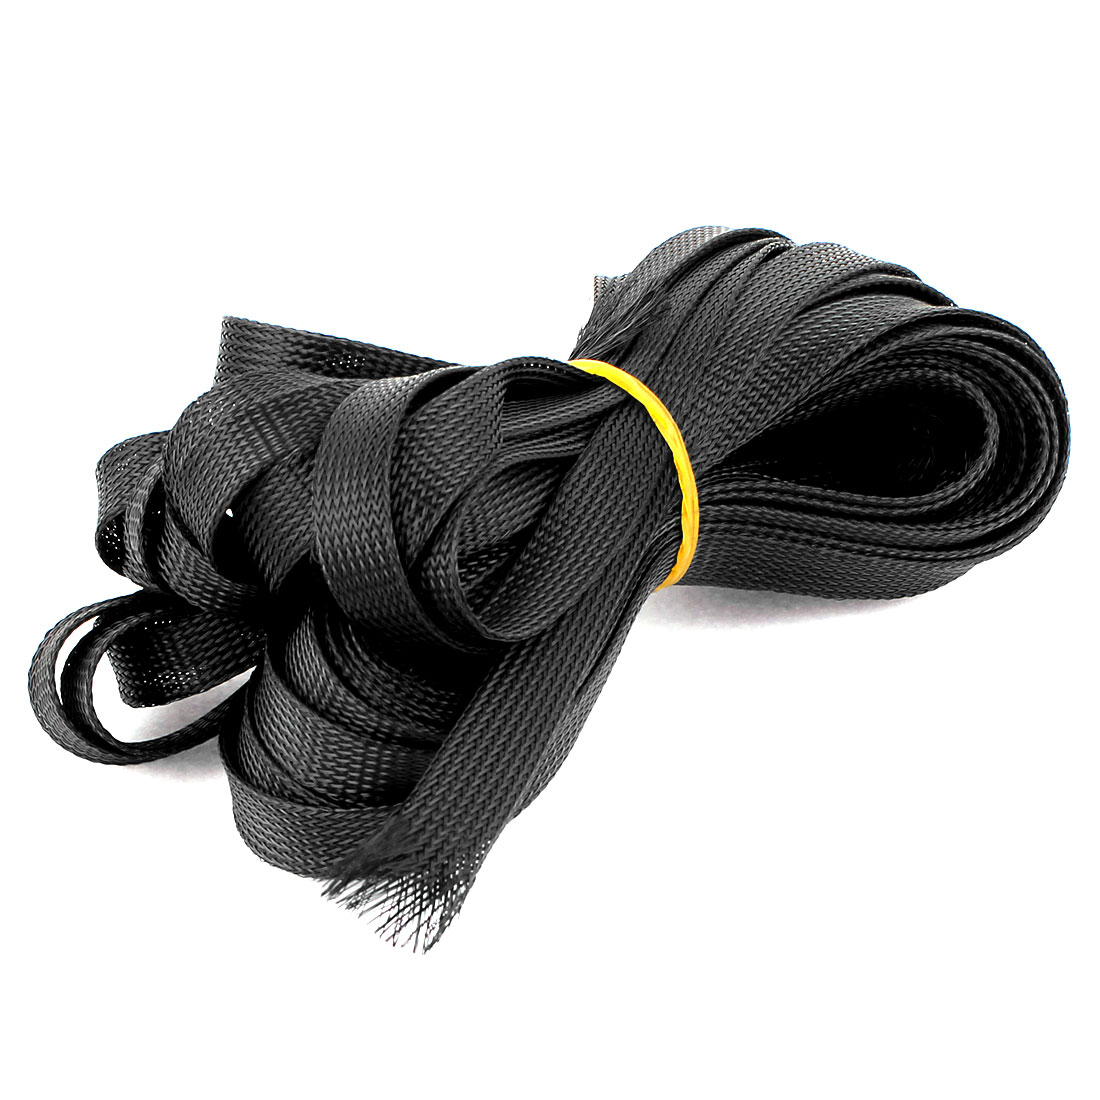 16.5M Long 16mm Width Black Nylon Expandable Braided Sleeving Cable Cover Wire Wrap